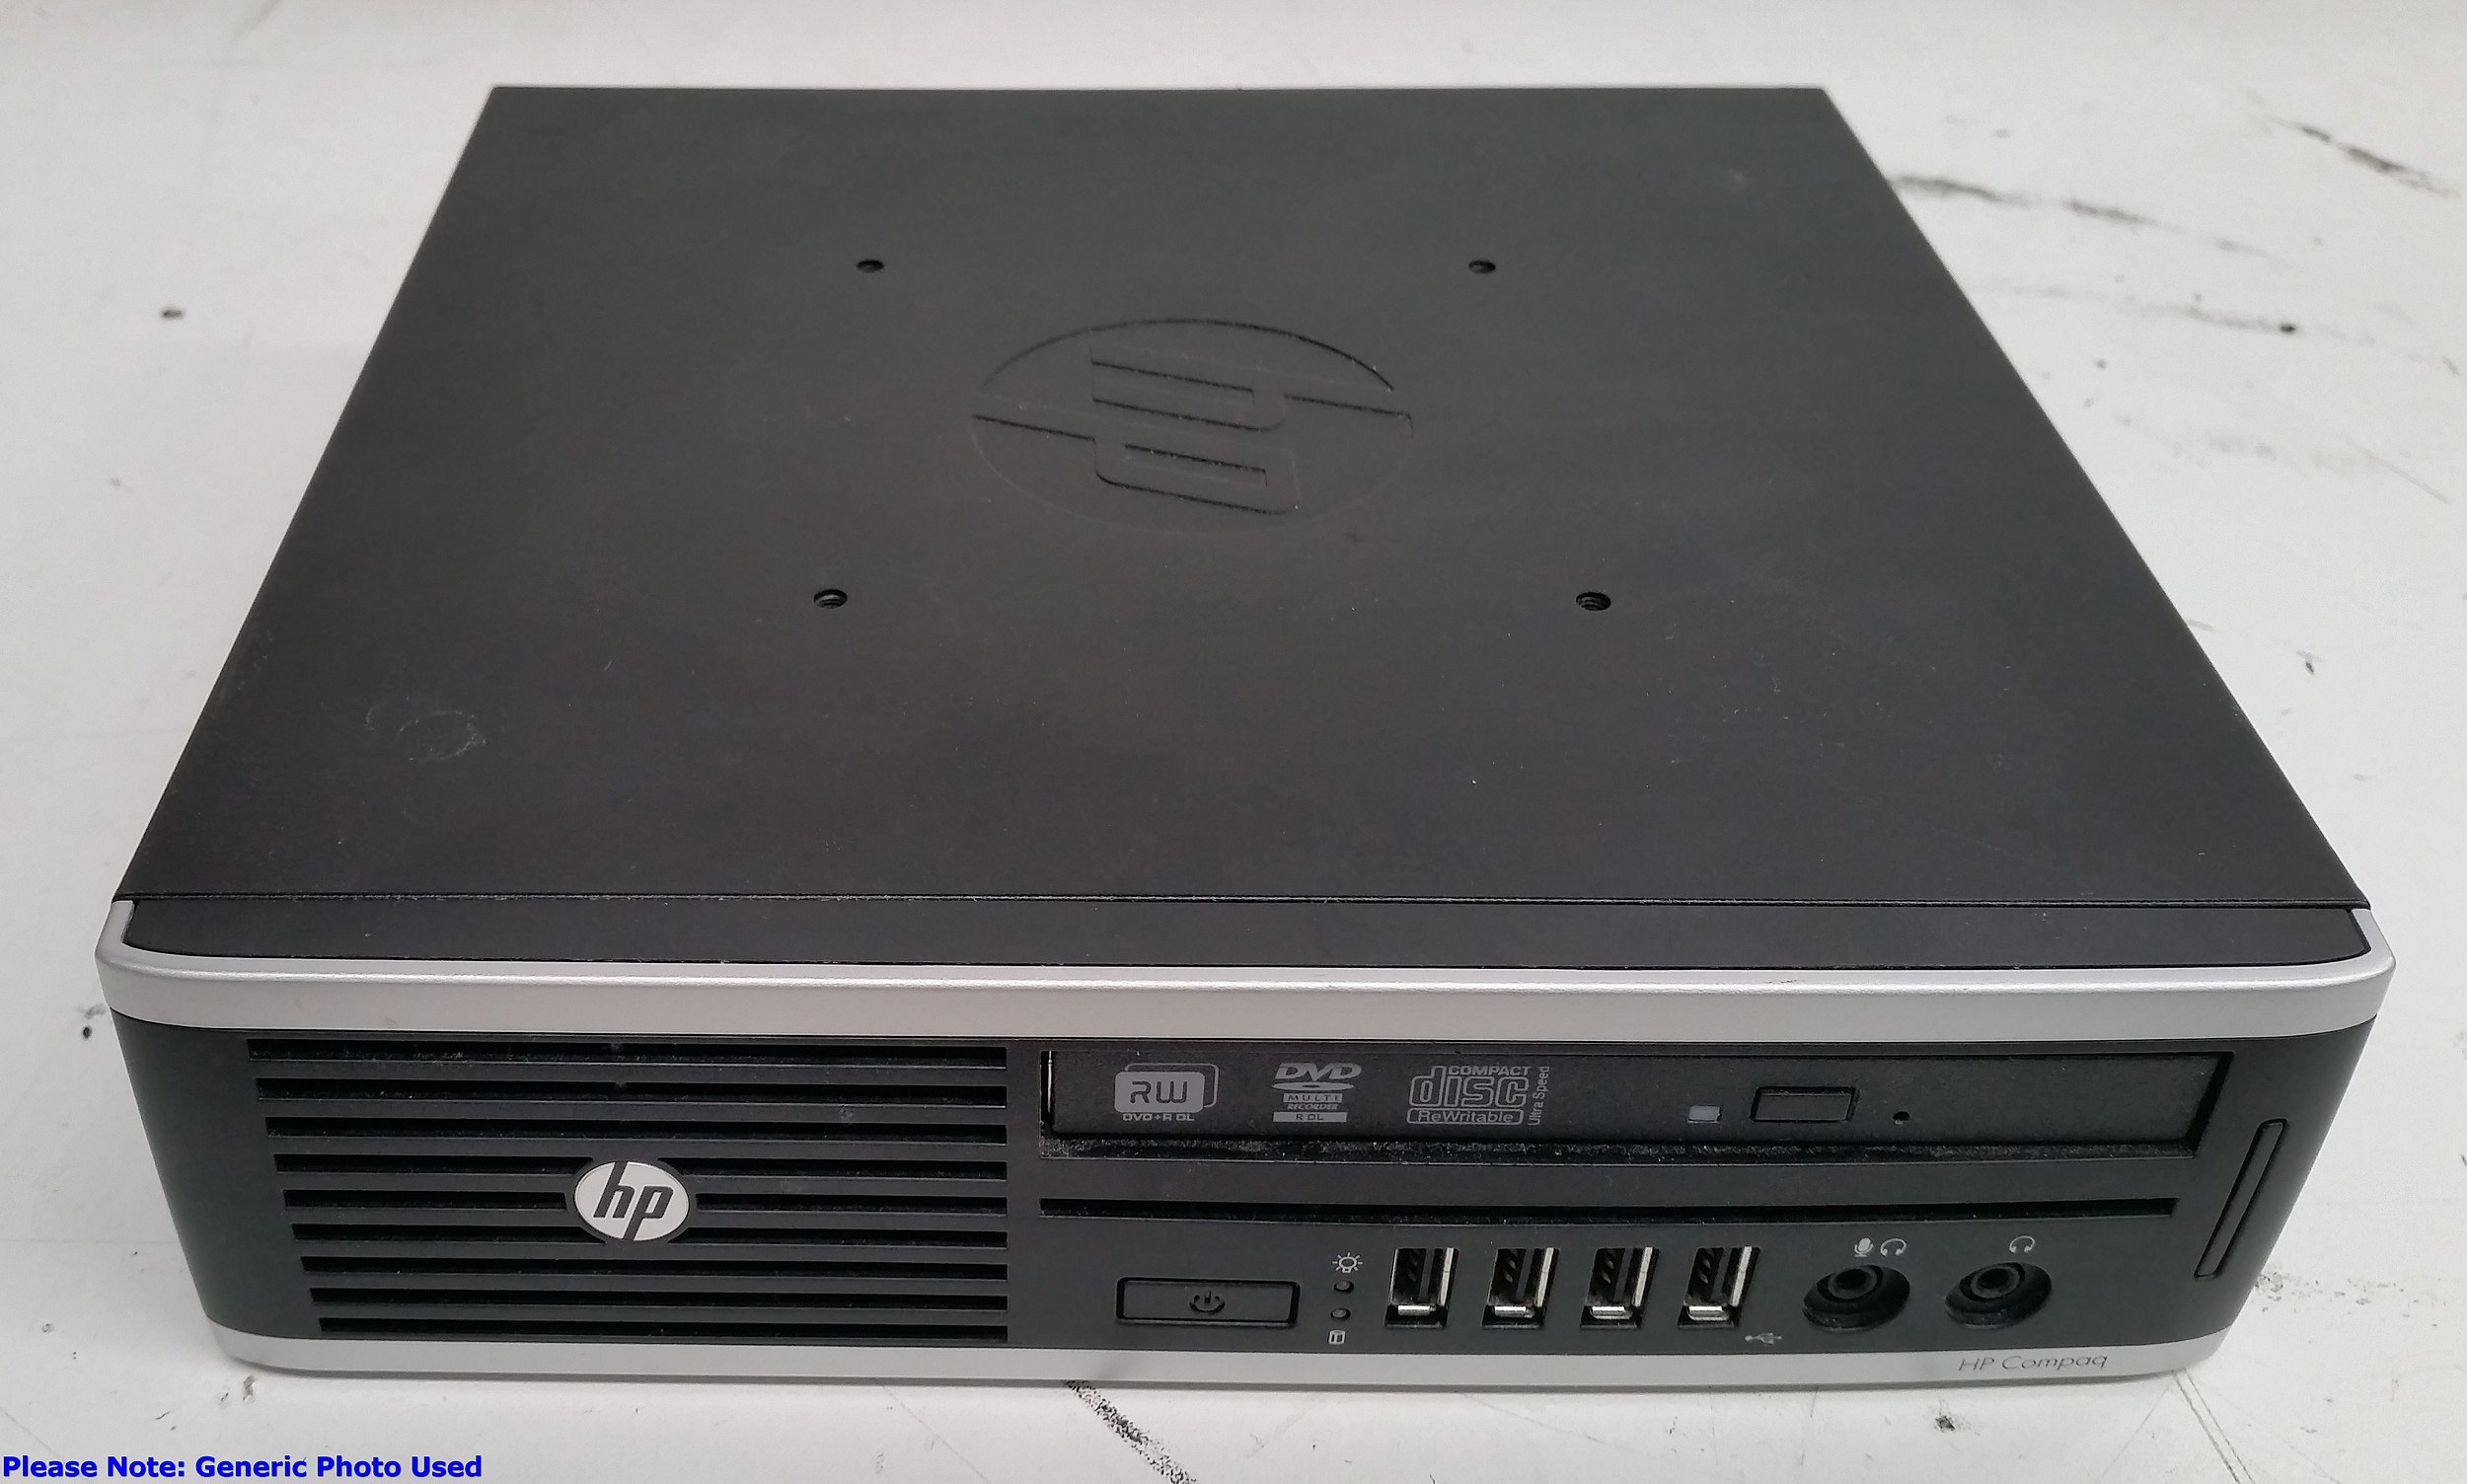 HP Compaq 8200 Elite Ultra-Slim Core i5 (2500S) 2 70GHz Desktop Computer